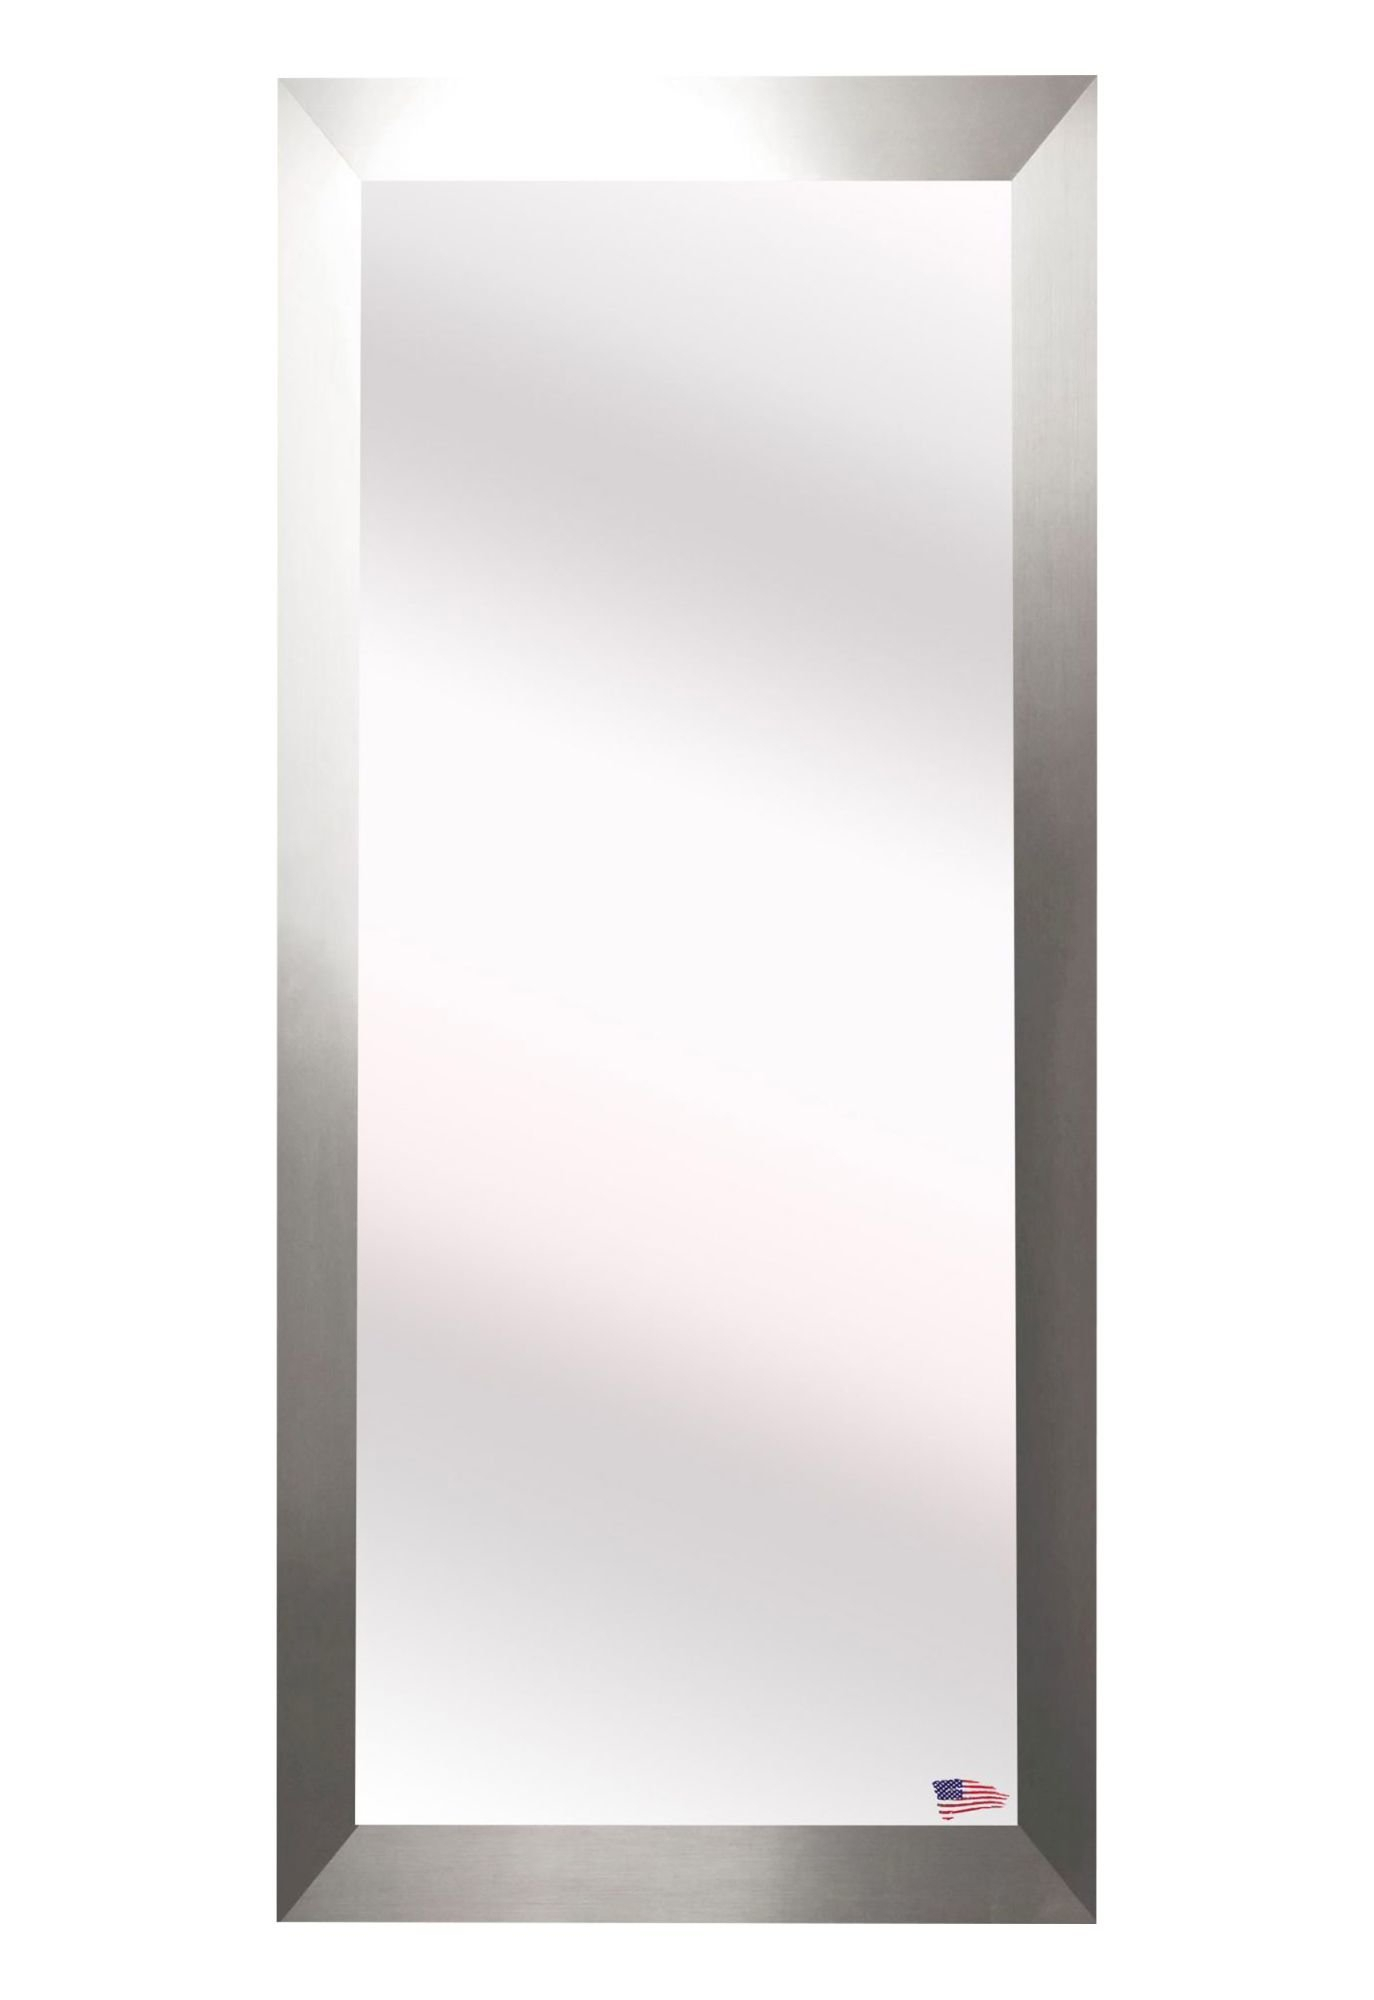 Suddenly Brushed Nickel Wall Mirror Loree Fini #16196 In Hogge Modern Brushed Nickel Large Frame Wall Mirrors (View 19 of 20)